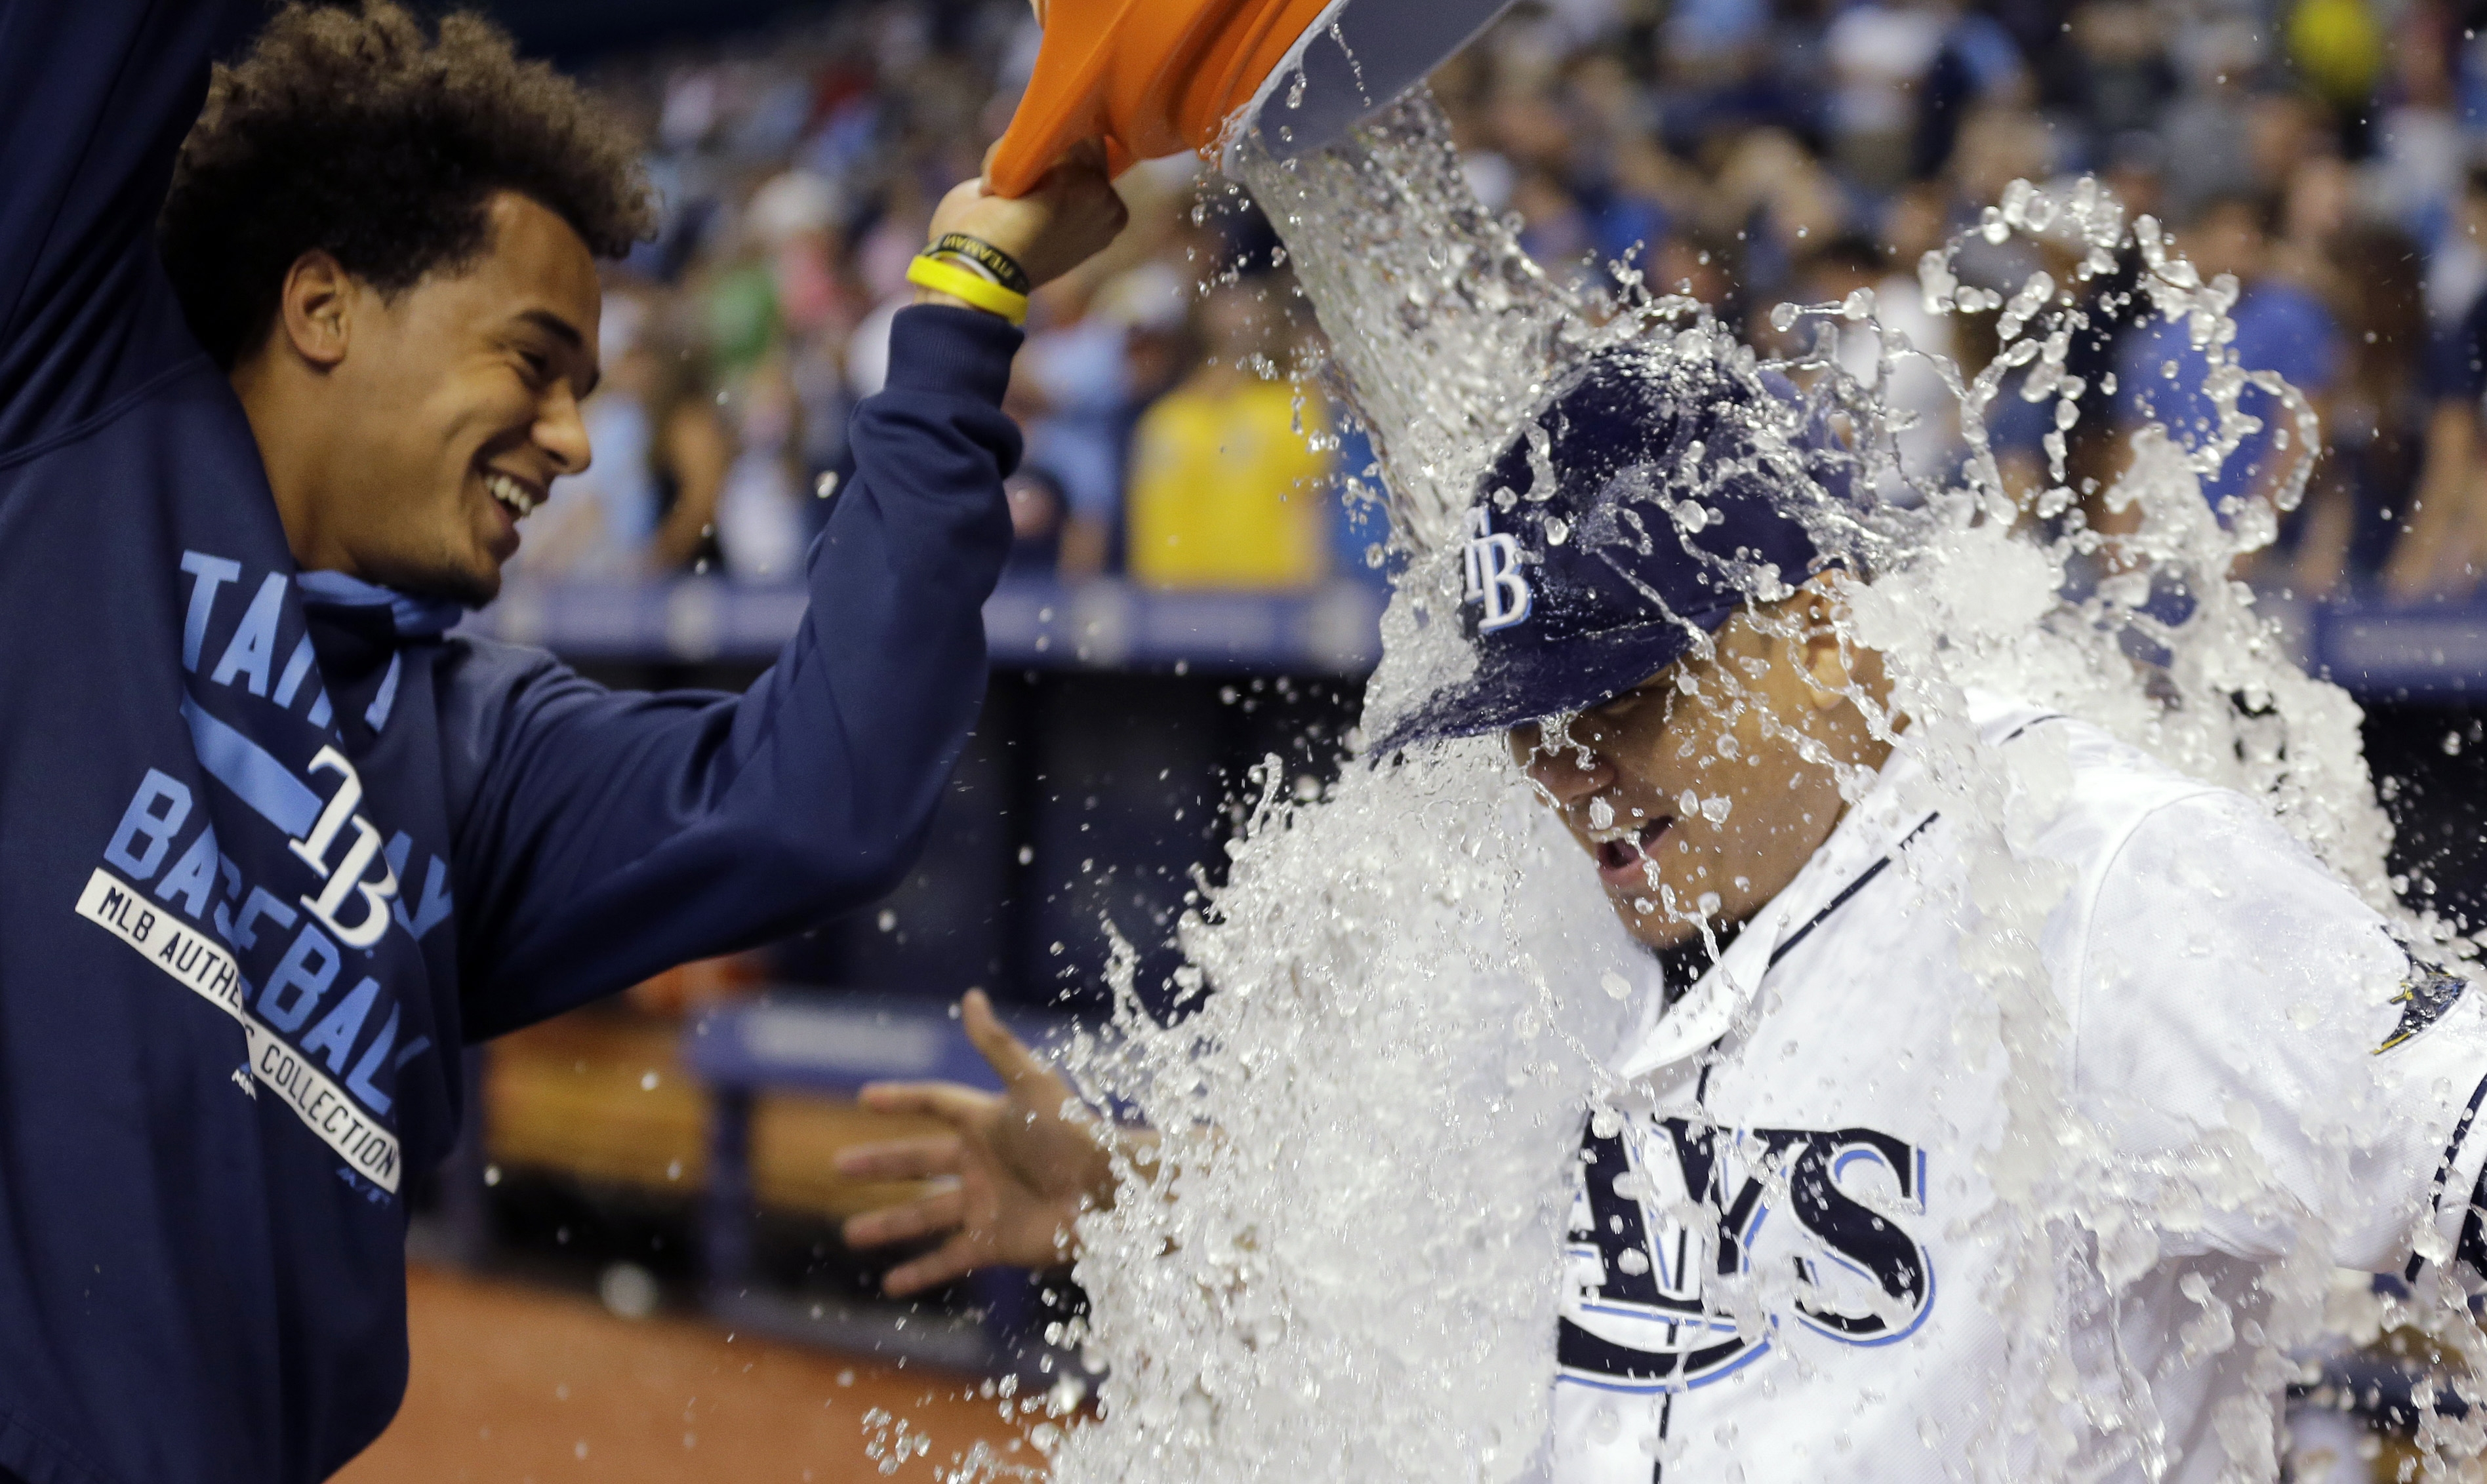 Tampa Bay Rays starting pitcher Erasmo Ramirez, right, gets doused with water by teammate Chris Archer as Ramirez is interviewed following the team's 2-0 win over the Atlanta Braves during a baseball game Tuesday, Aug. 11, 2015, in St. Petersburg, Fla. (A